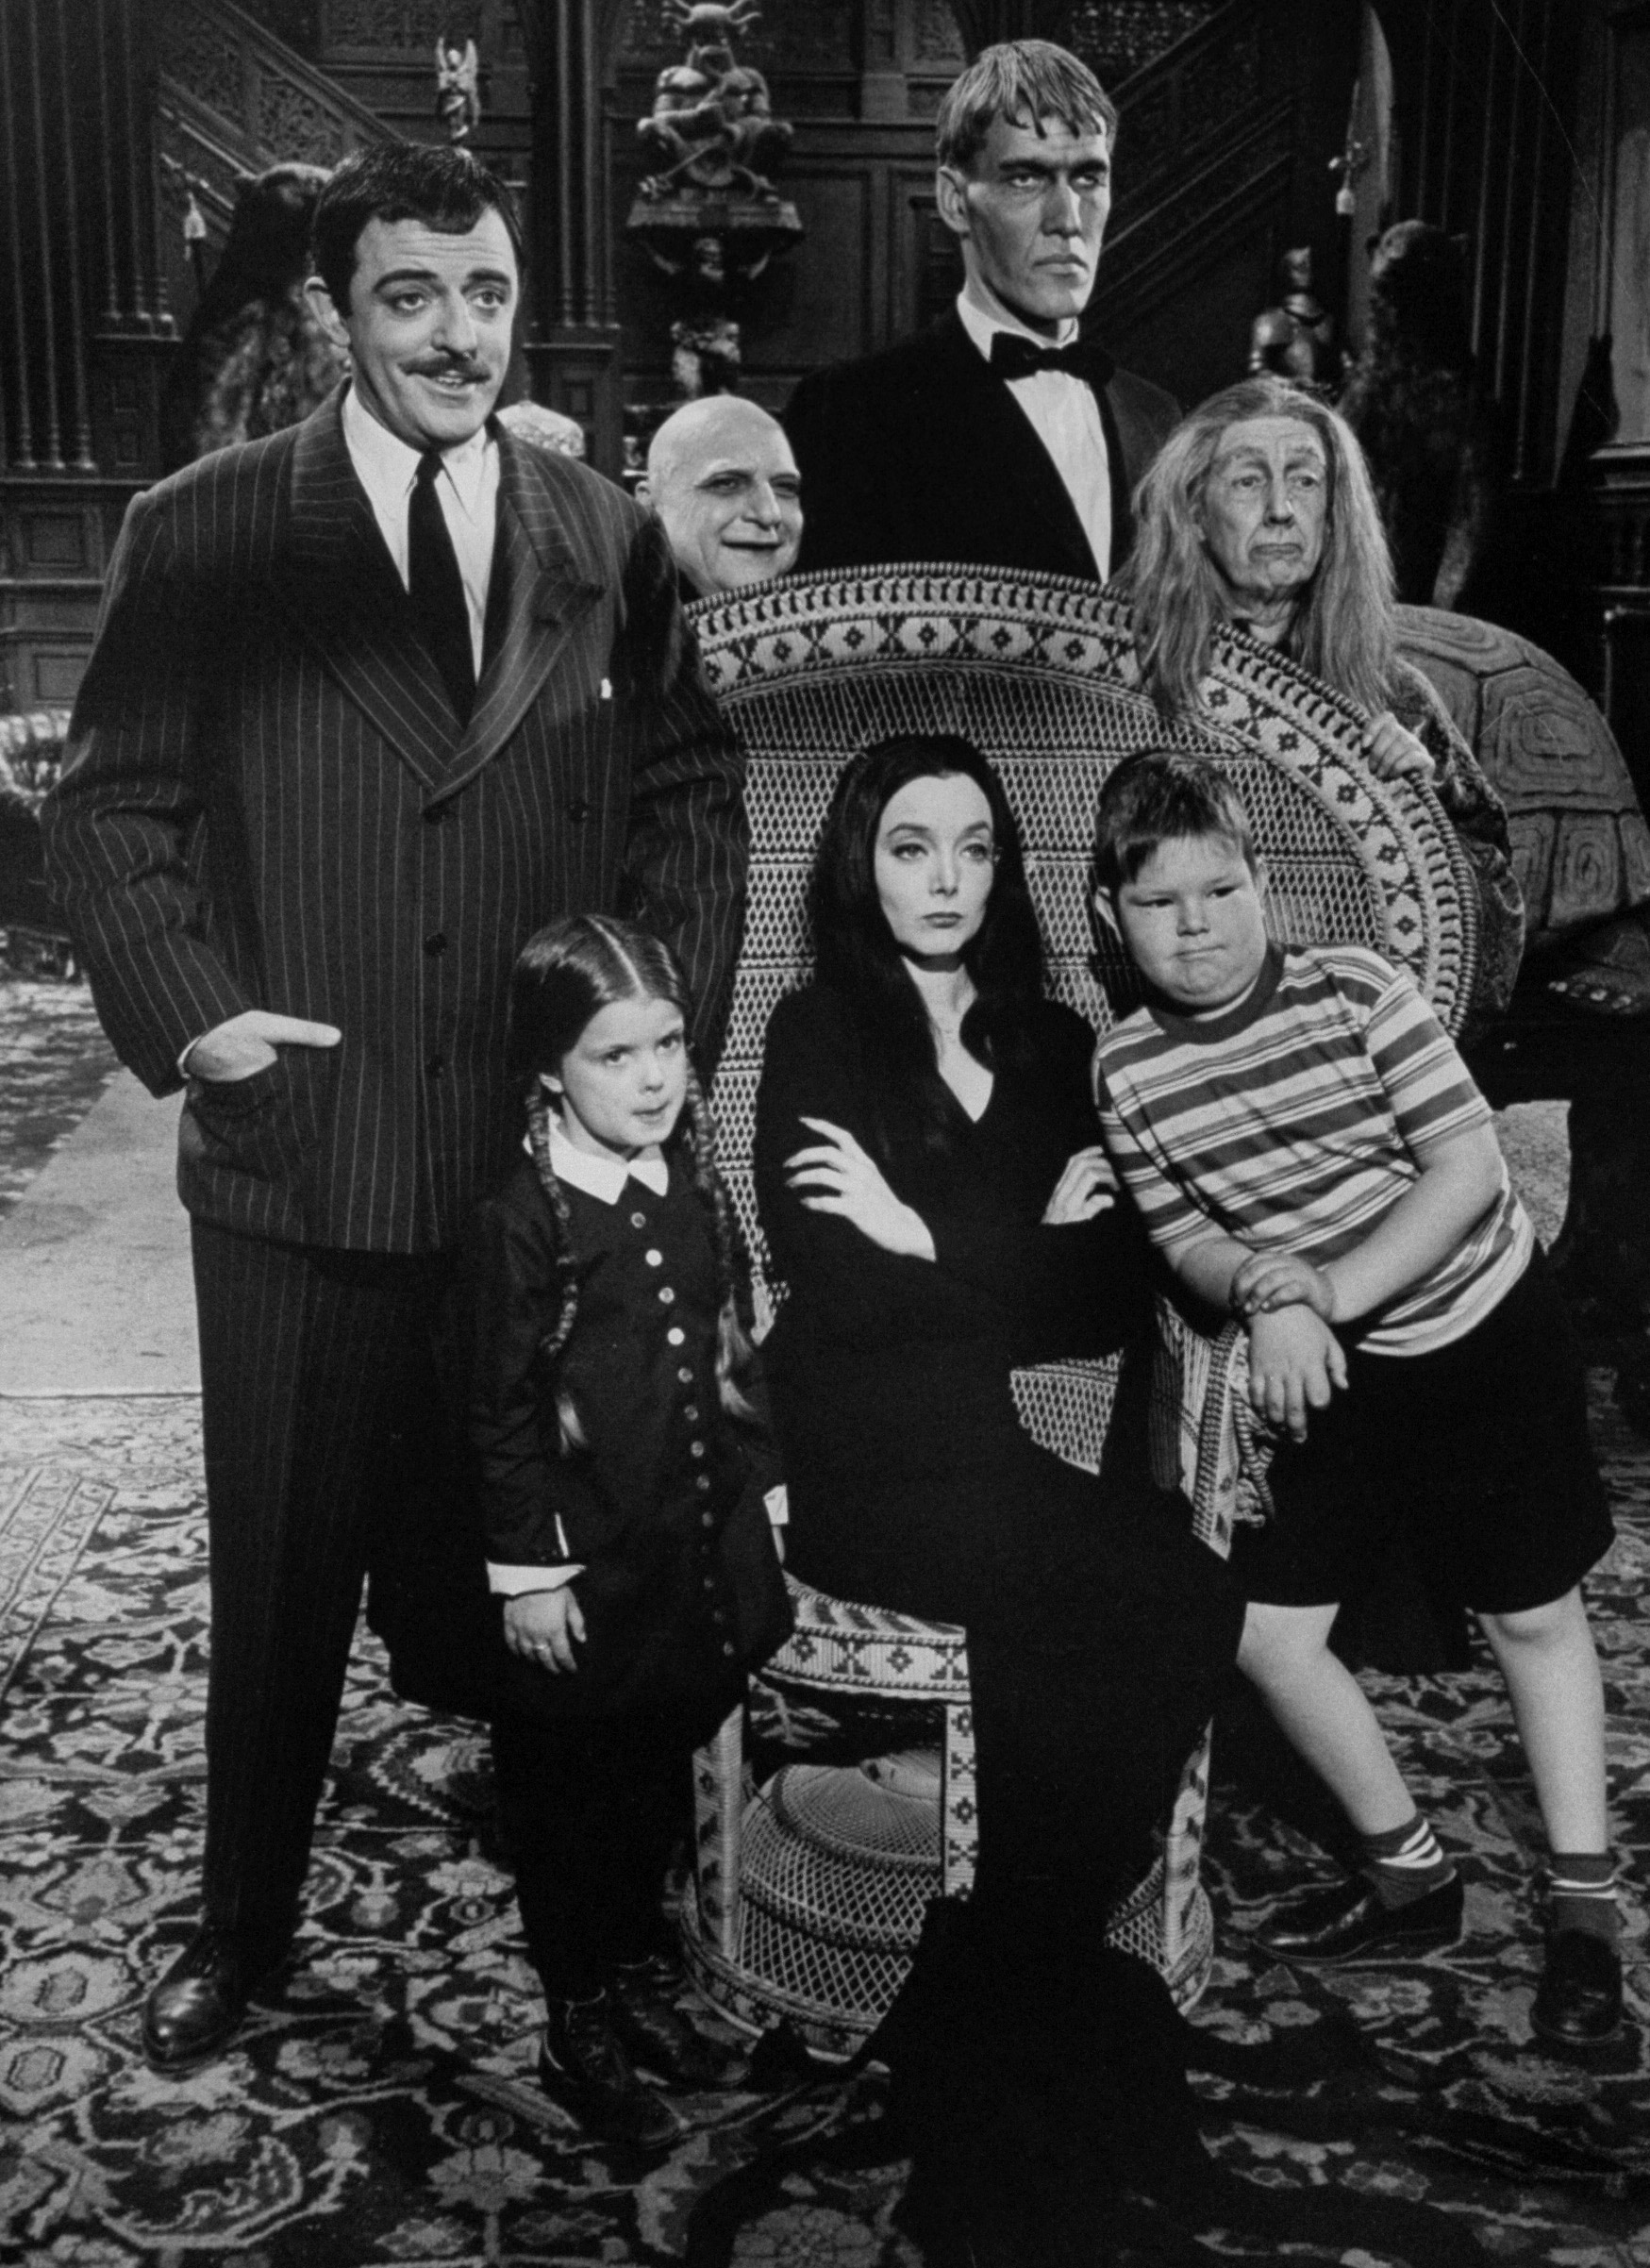 Find goth inspiration in the Addams Family, helmed by Carolyn Jones' Morticia and and John Astin's Gomez (pictured in 1964).